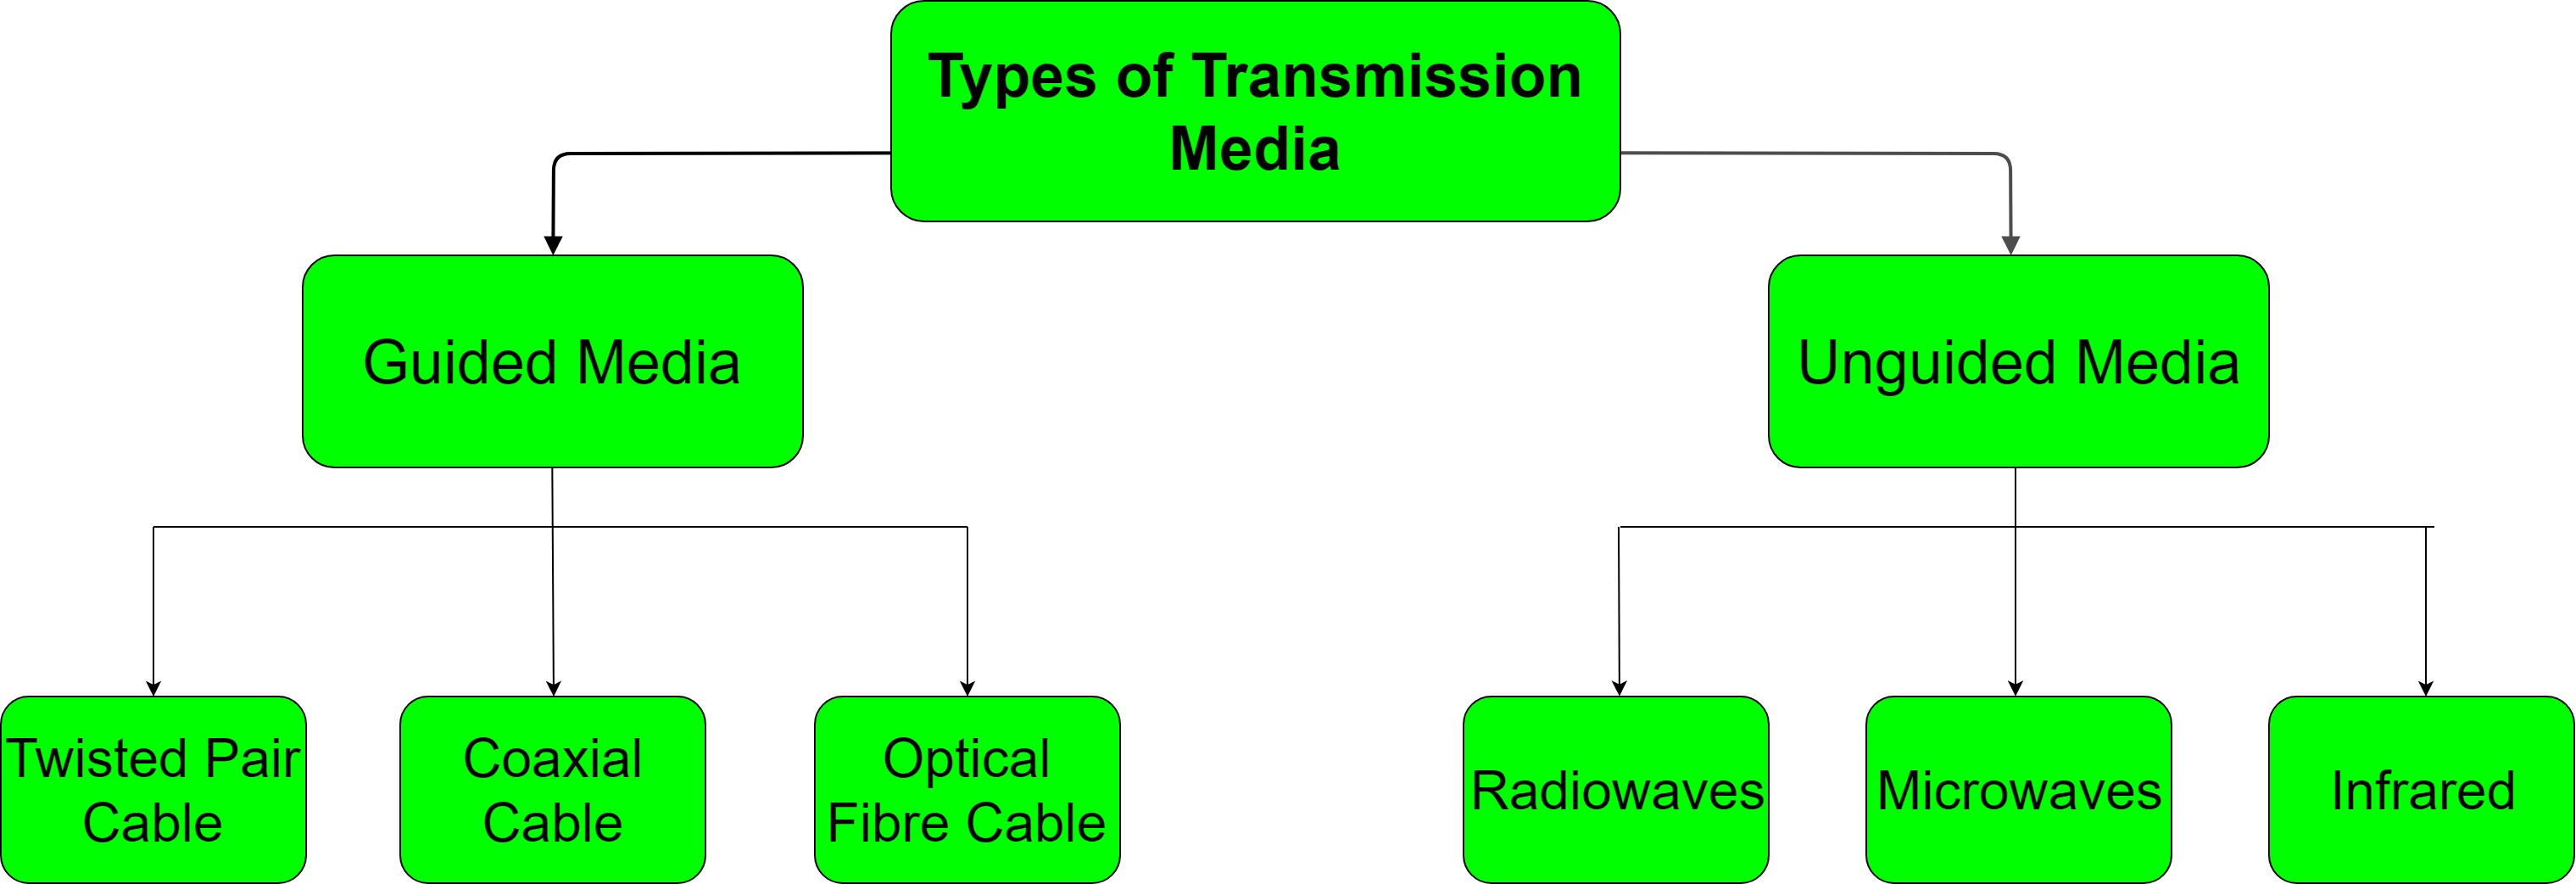 Types Of Transmission Media Final on Inter Systems Wiring Diagram